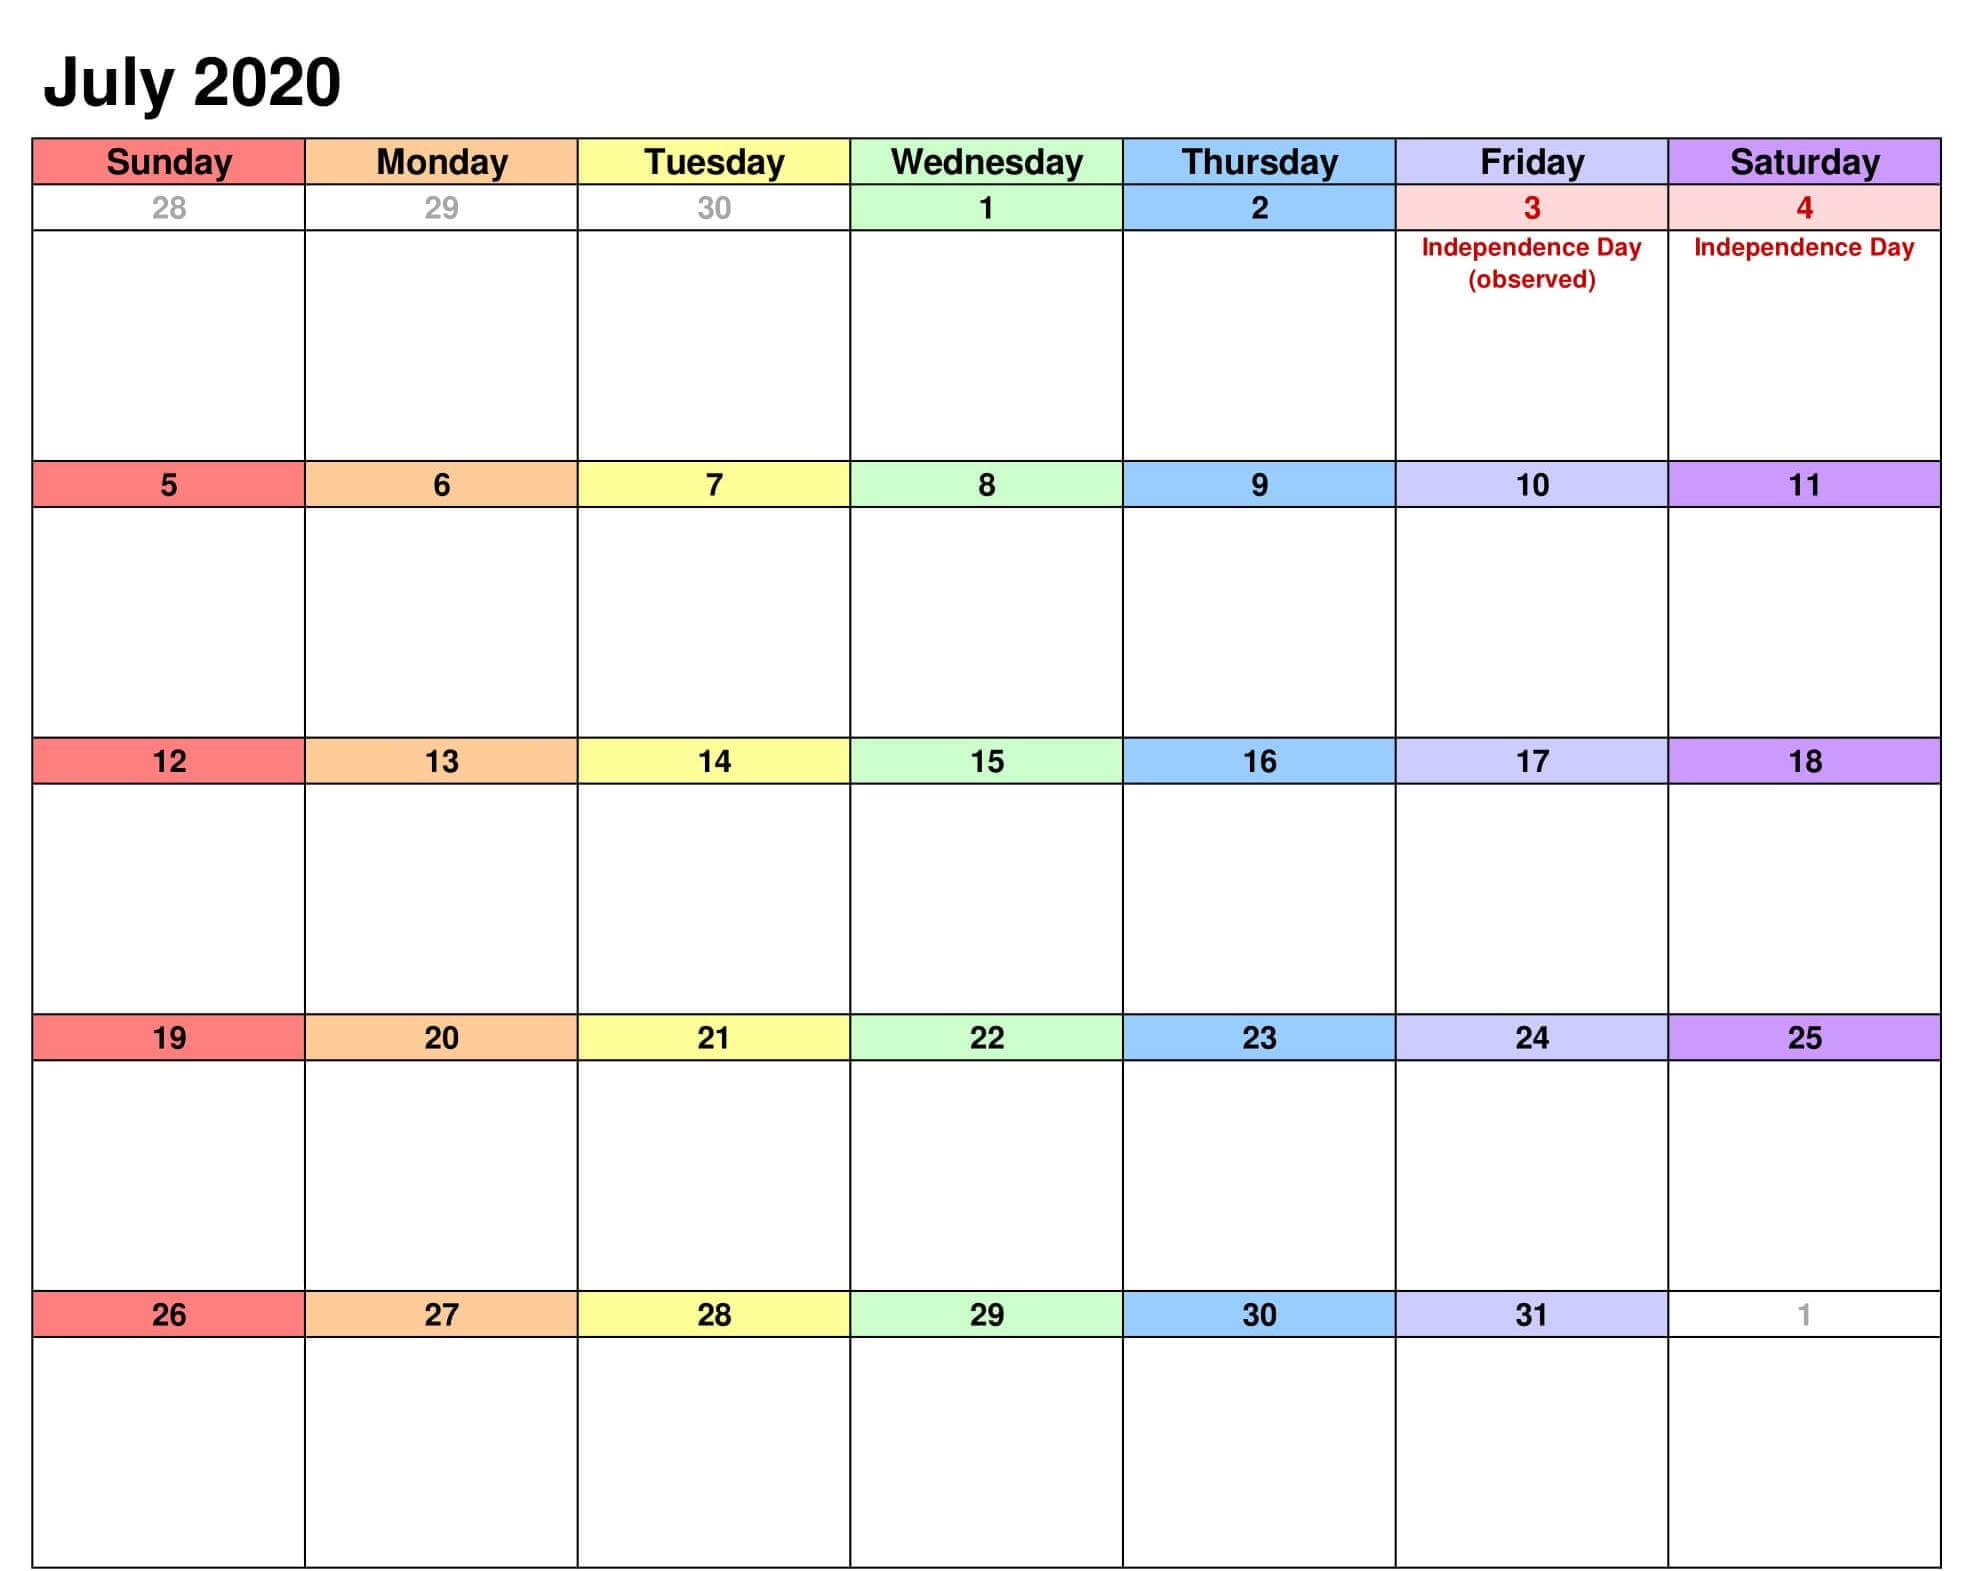 July Public Holidays Calendar 2020